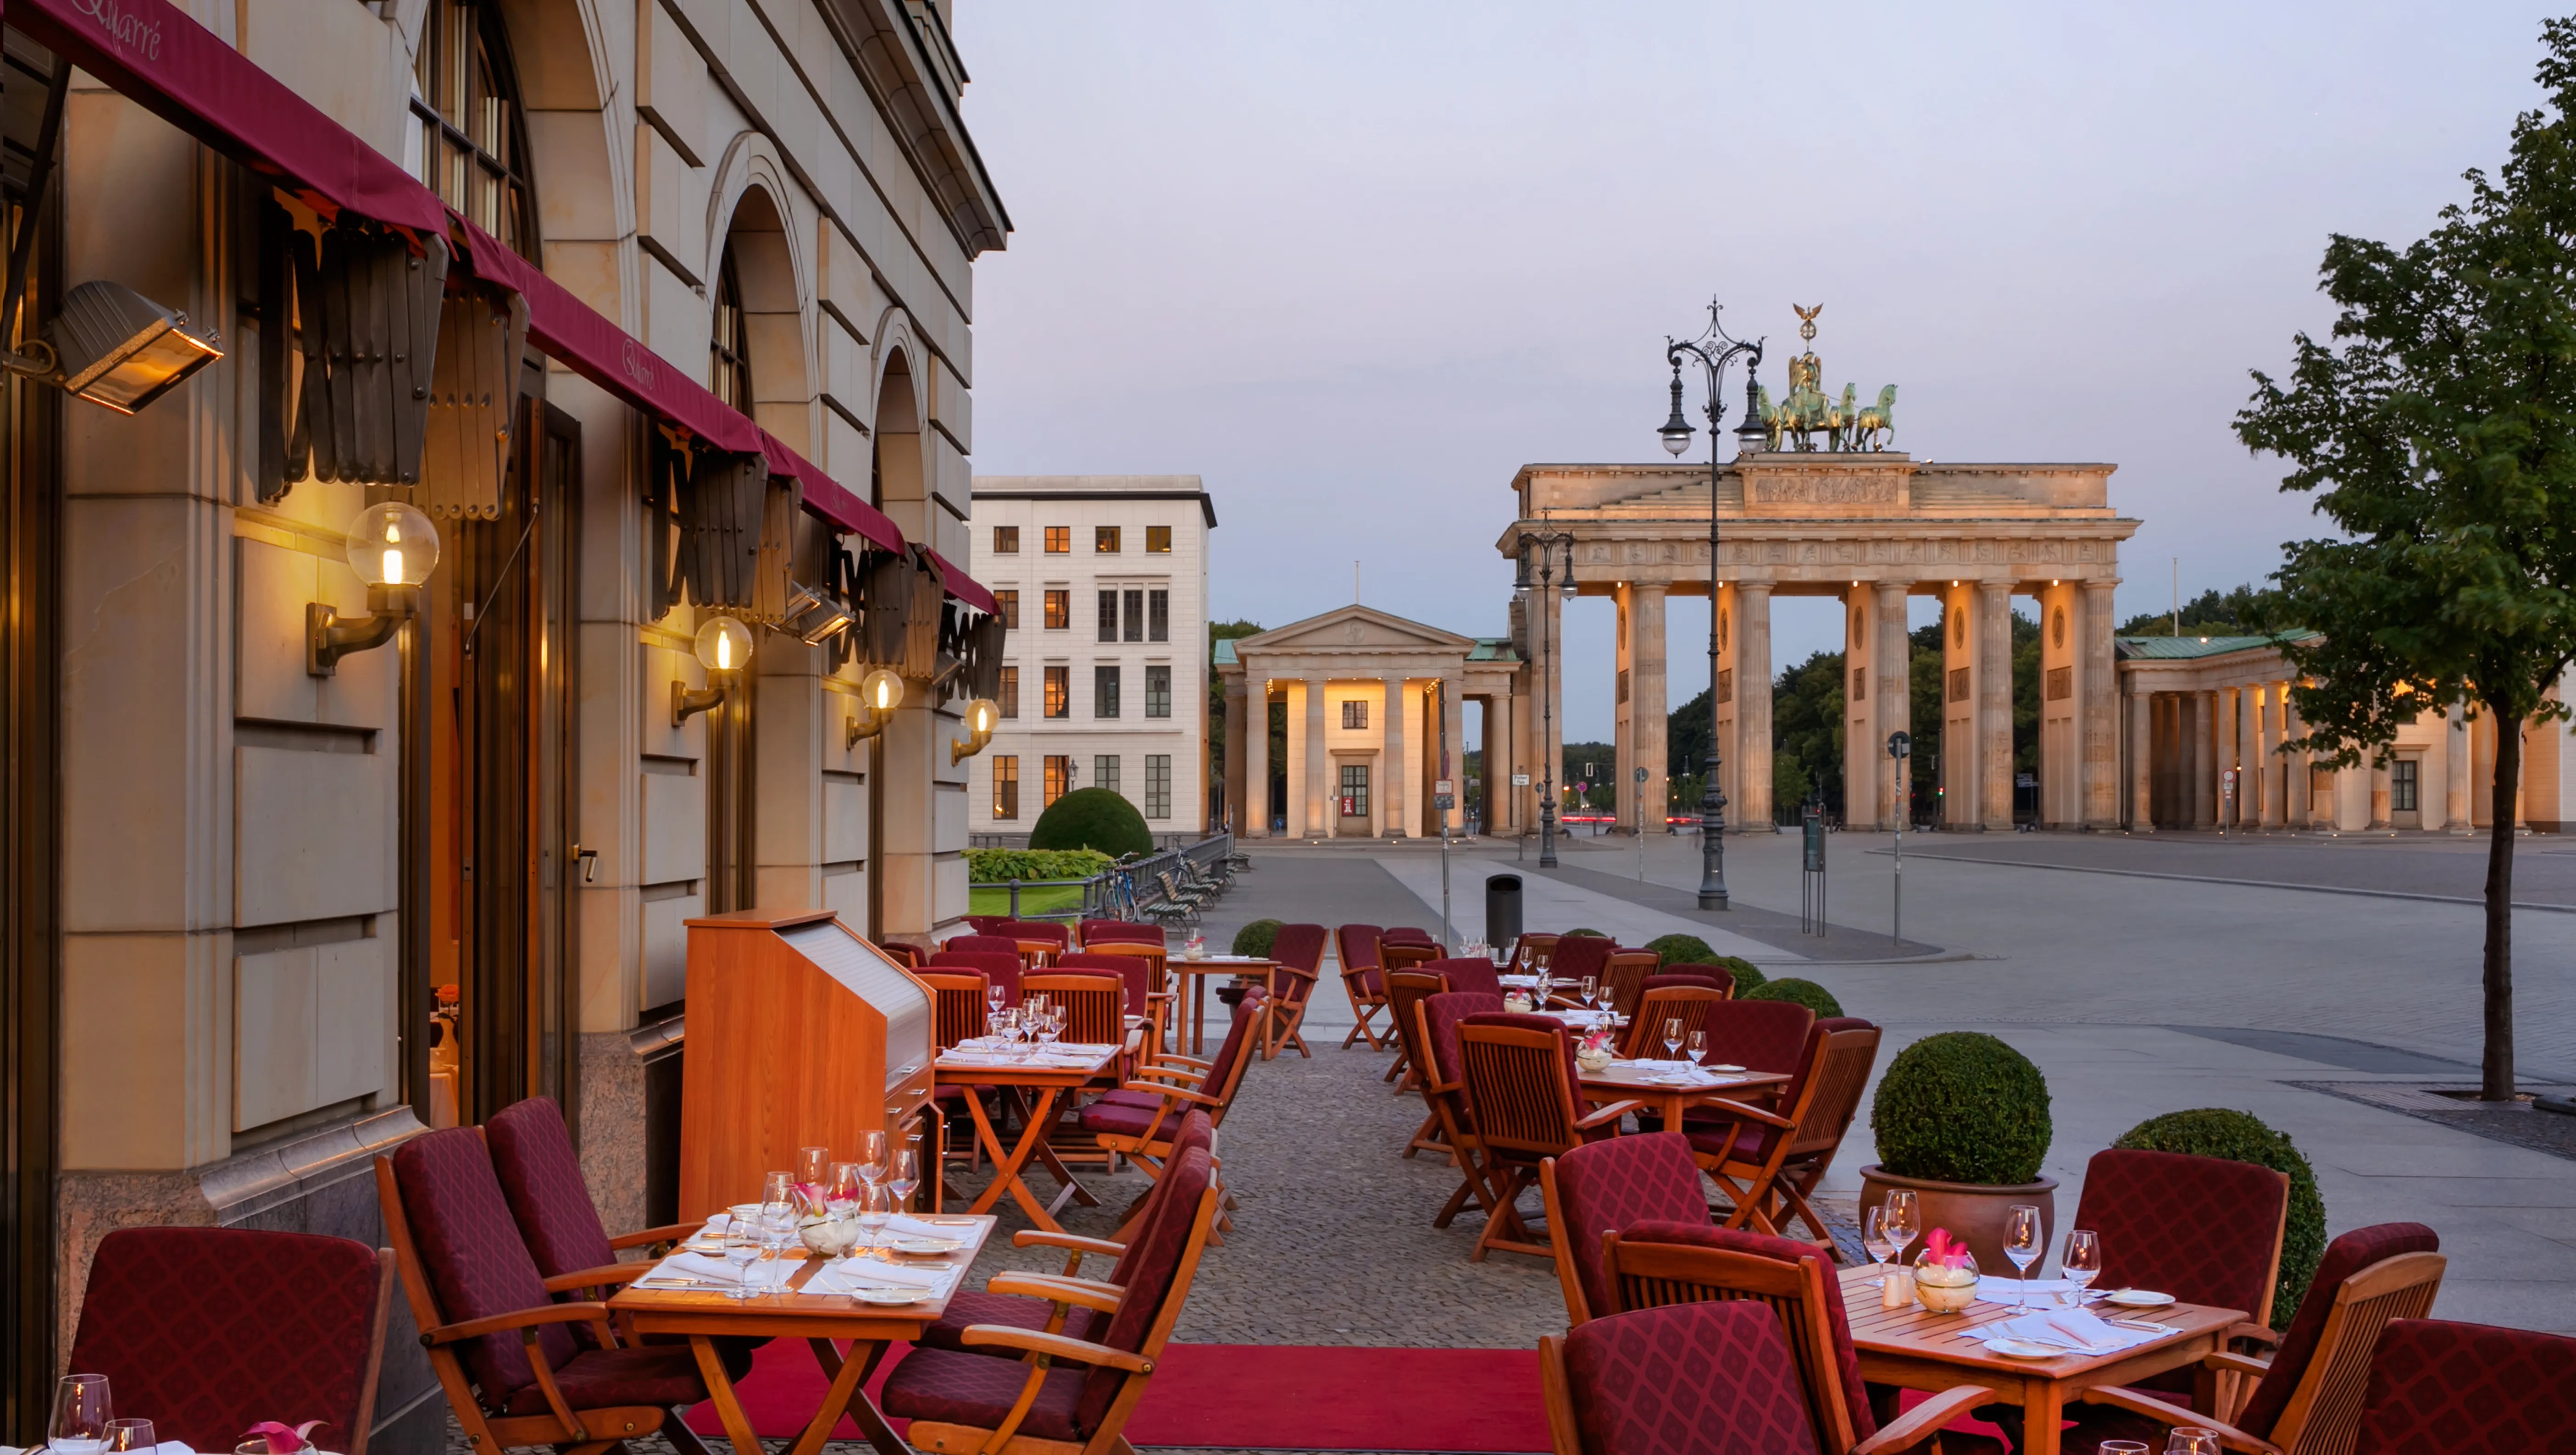 Best Berlin hotels Top rated properties on bookingcom